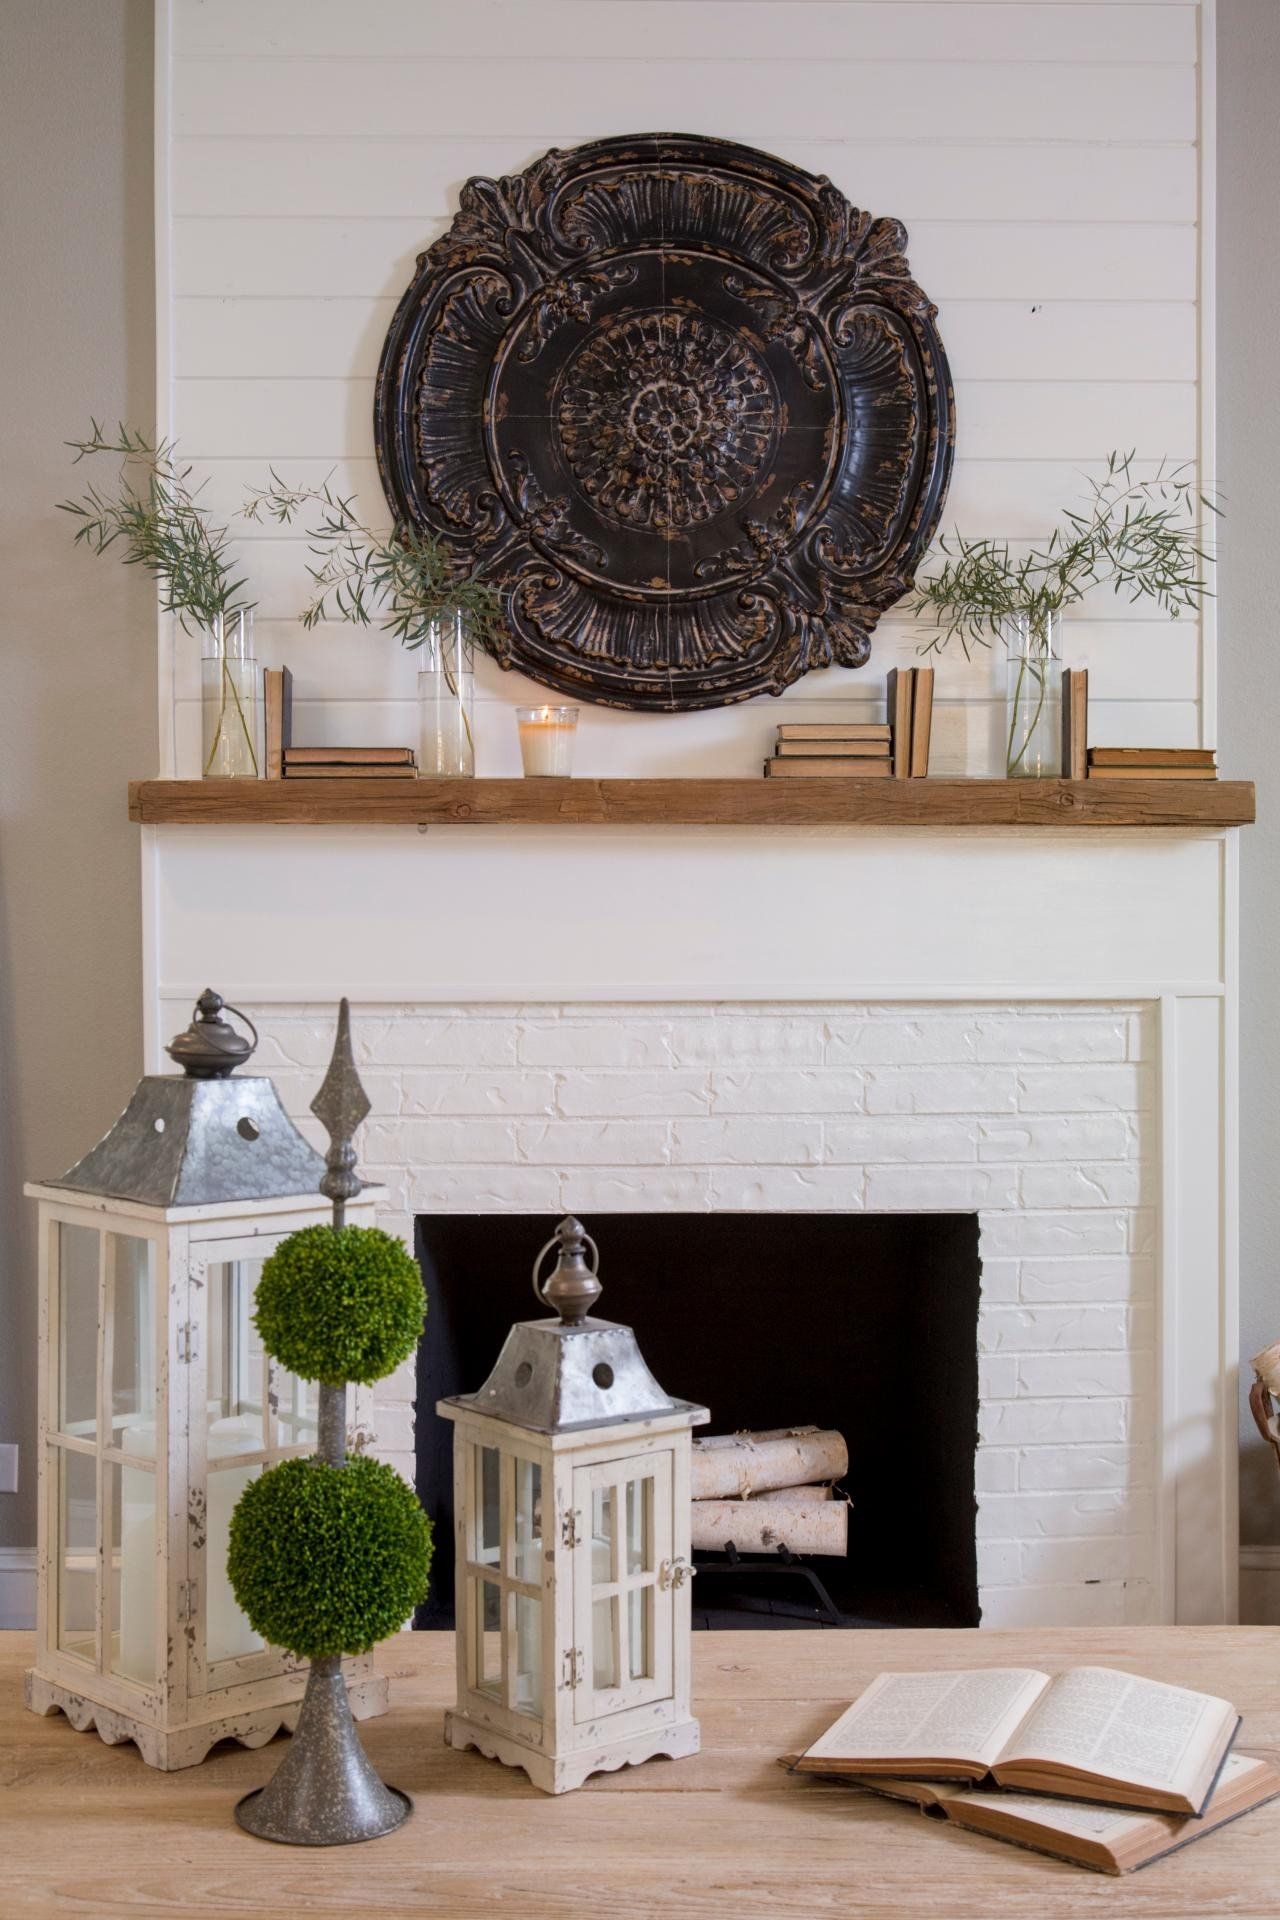 18 Genius Wall Decor Ideas | Hgtv's Decorating & Design Blog | Hgtv Regarding Most Current Architectural Wall Accents (View 2 of 15)